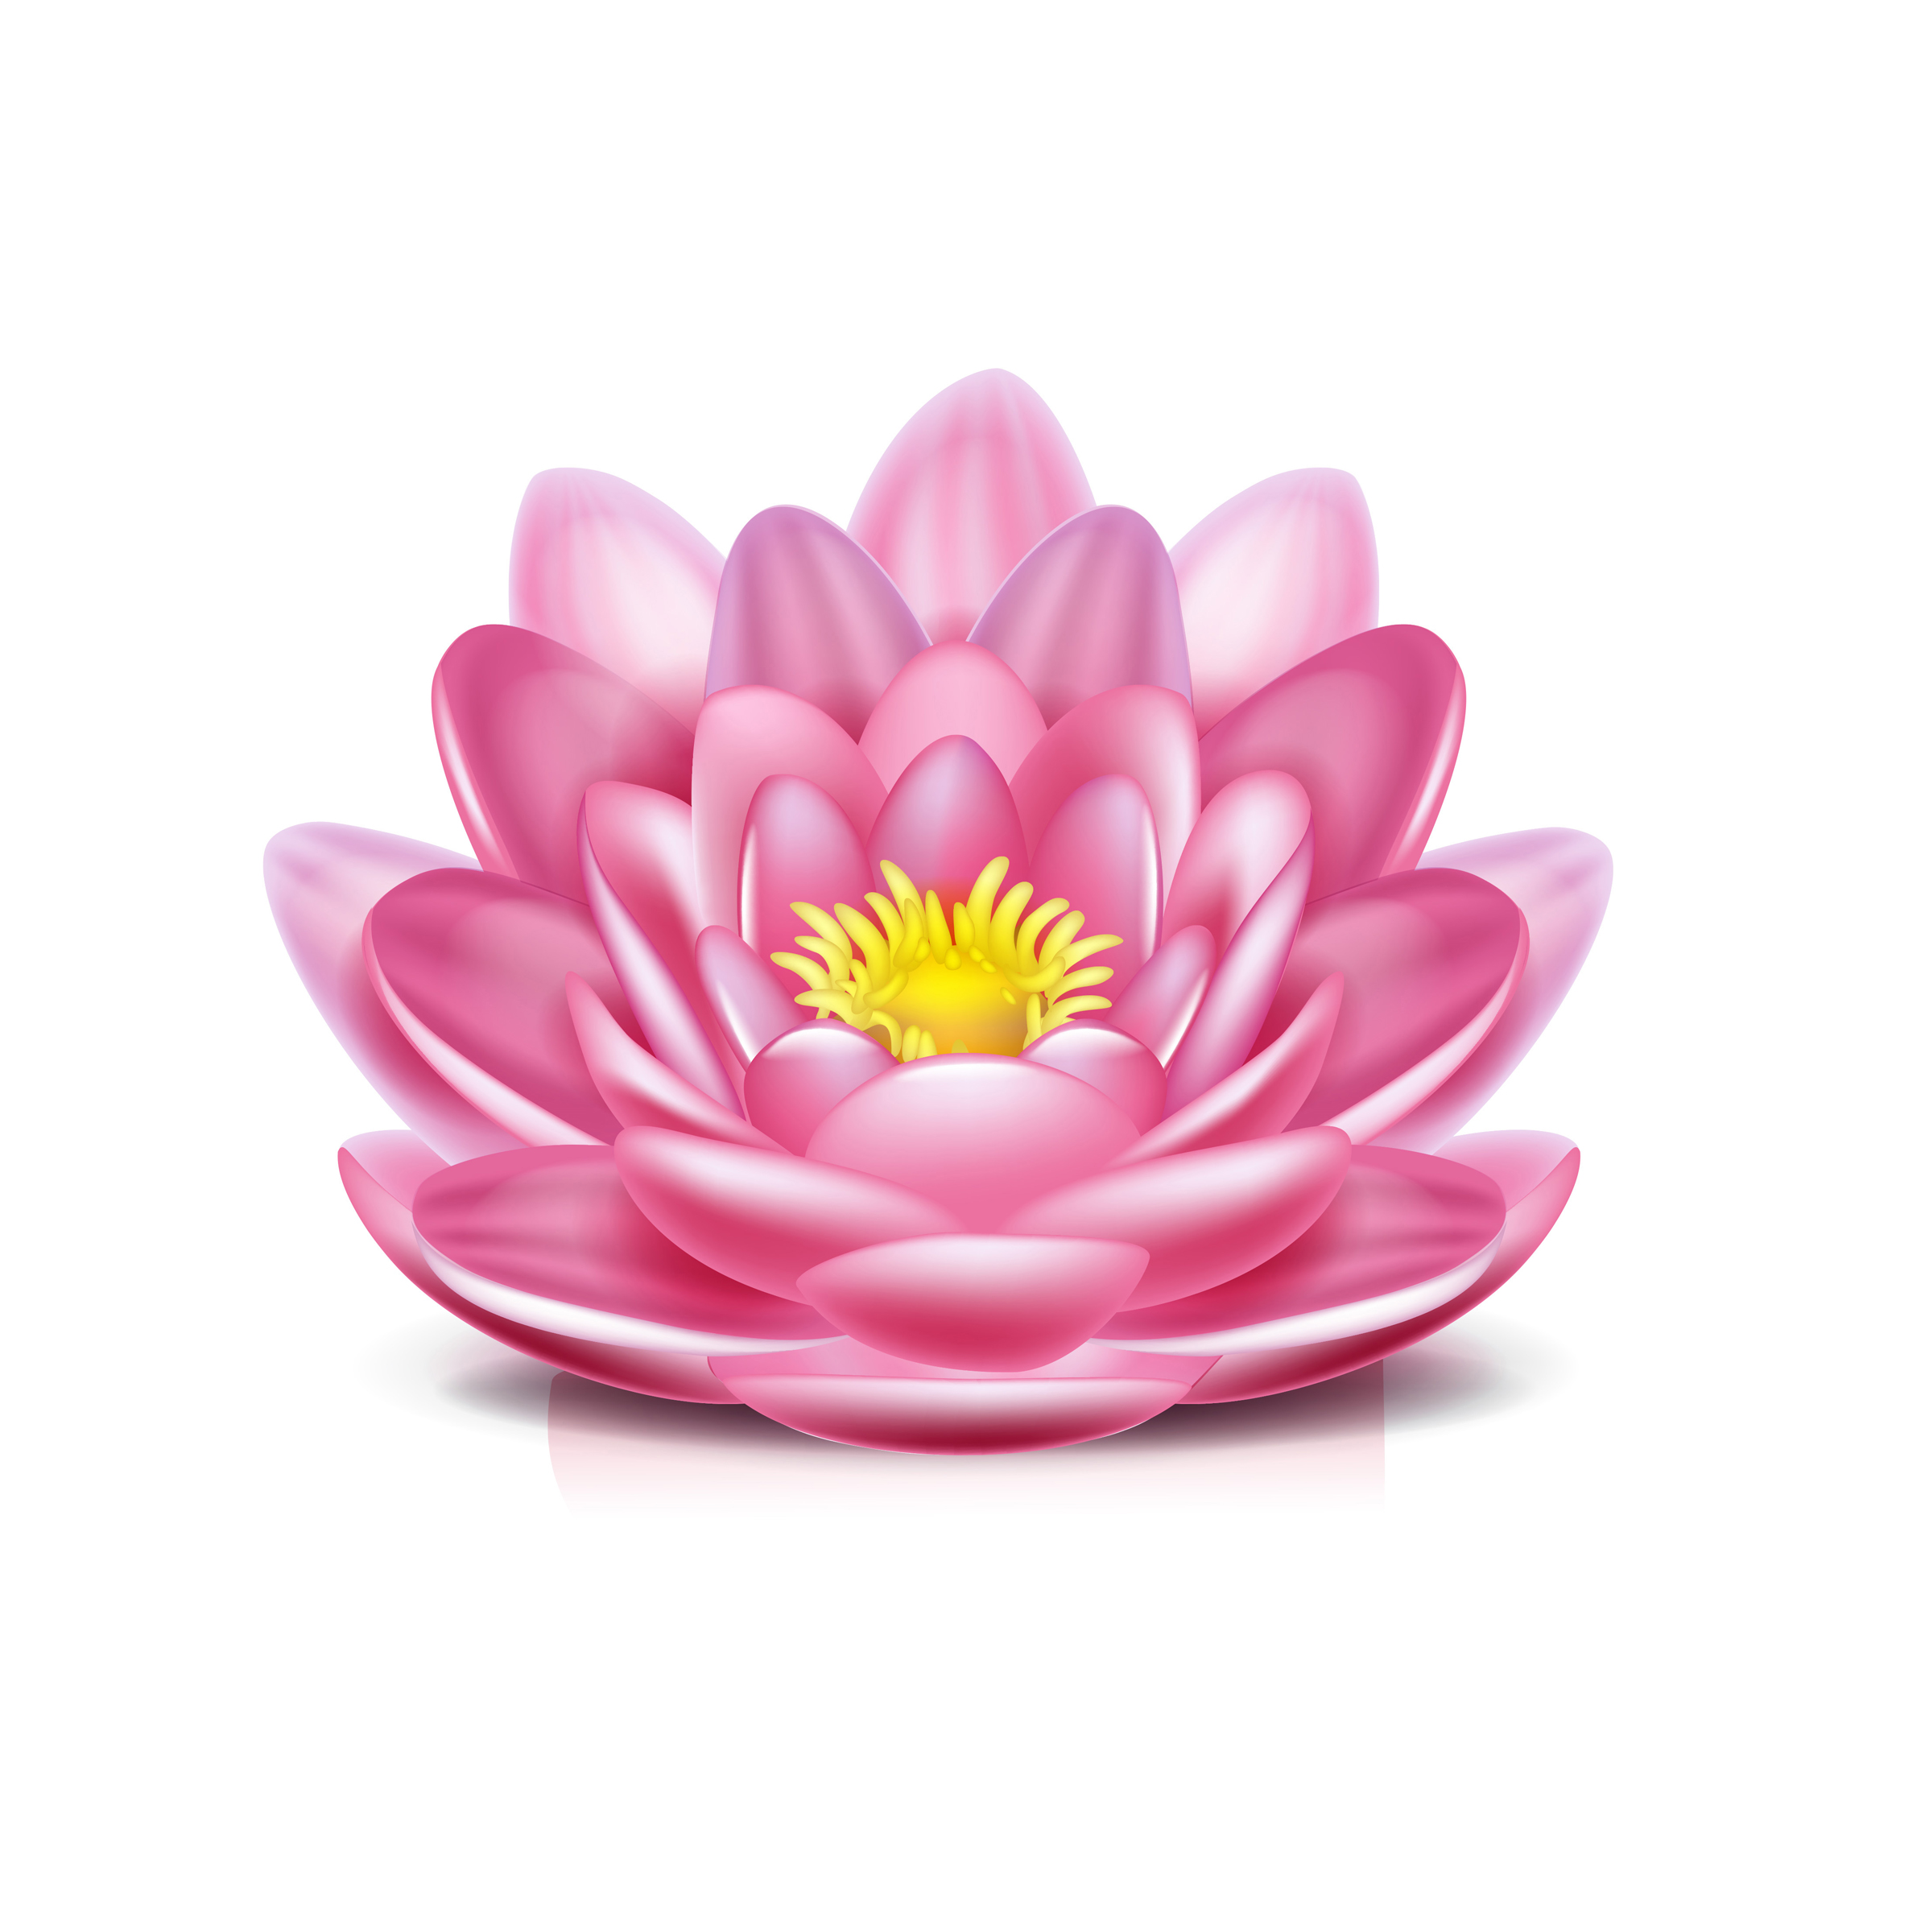 Lotus Flower Png Hd Transparent Lotus Flower Hdpng Images Pluspng